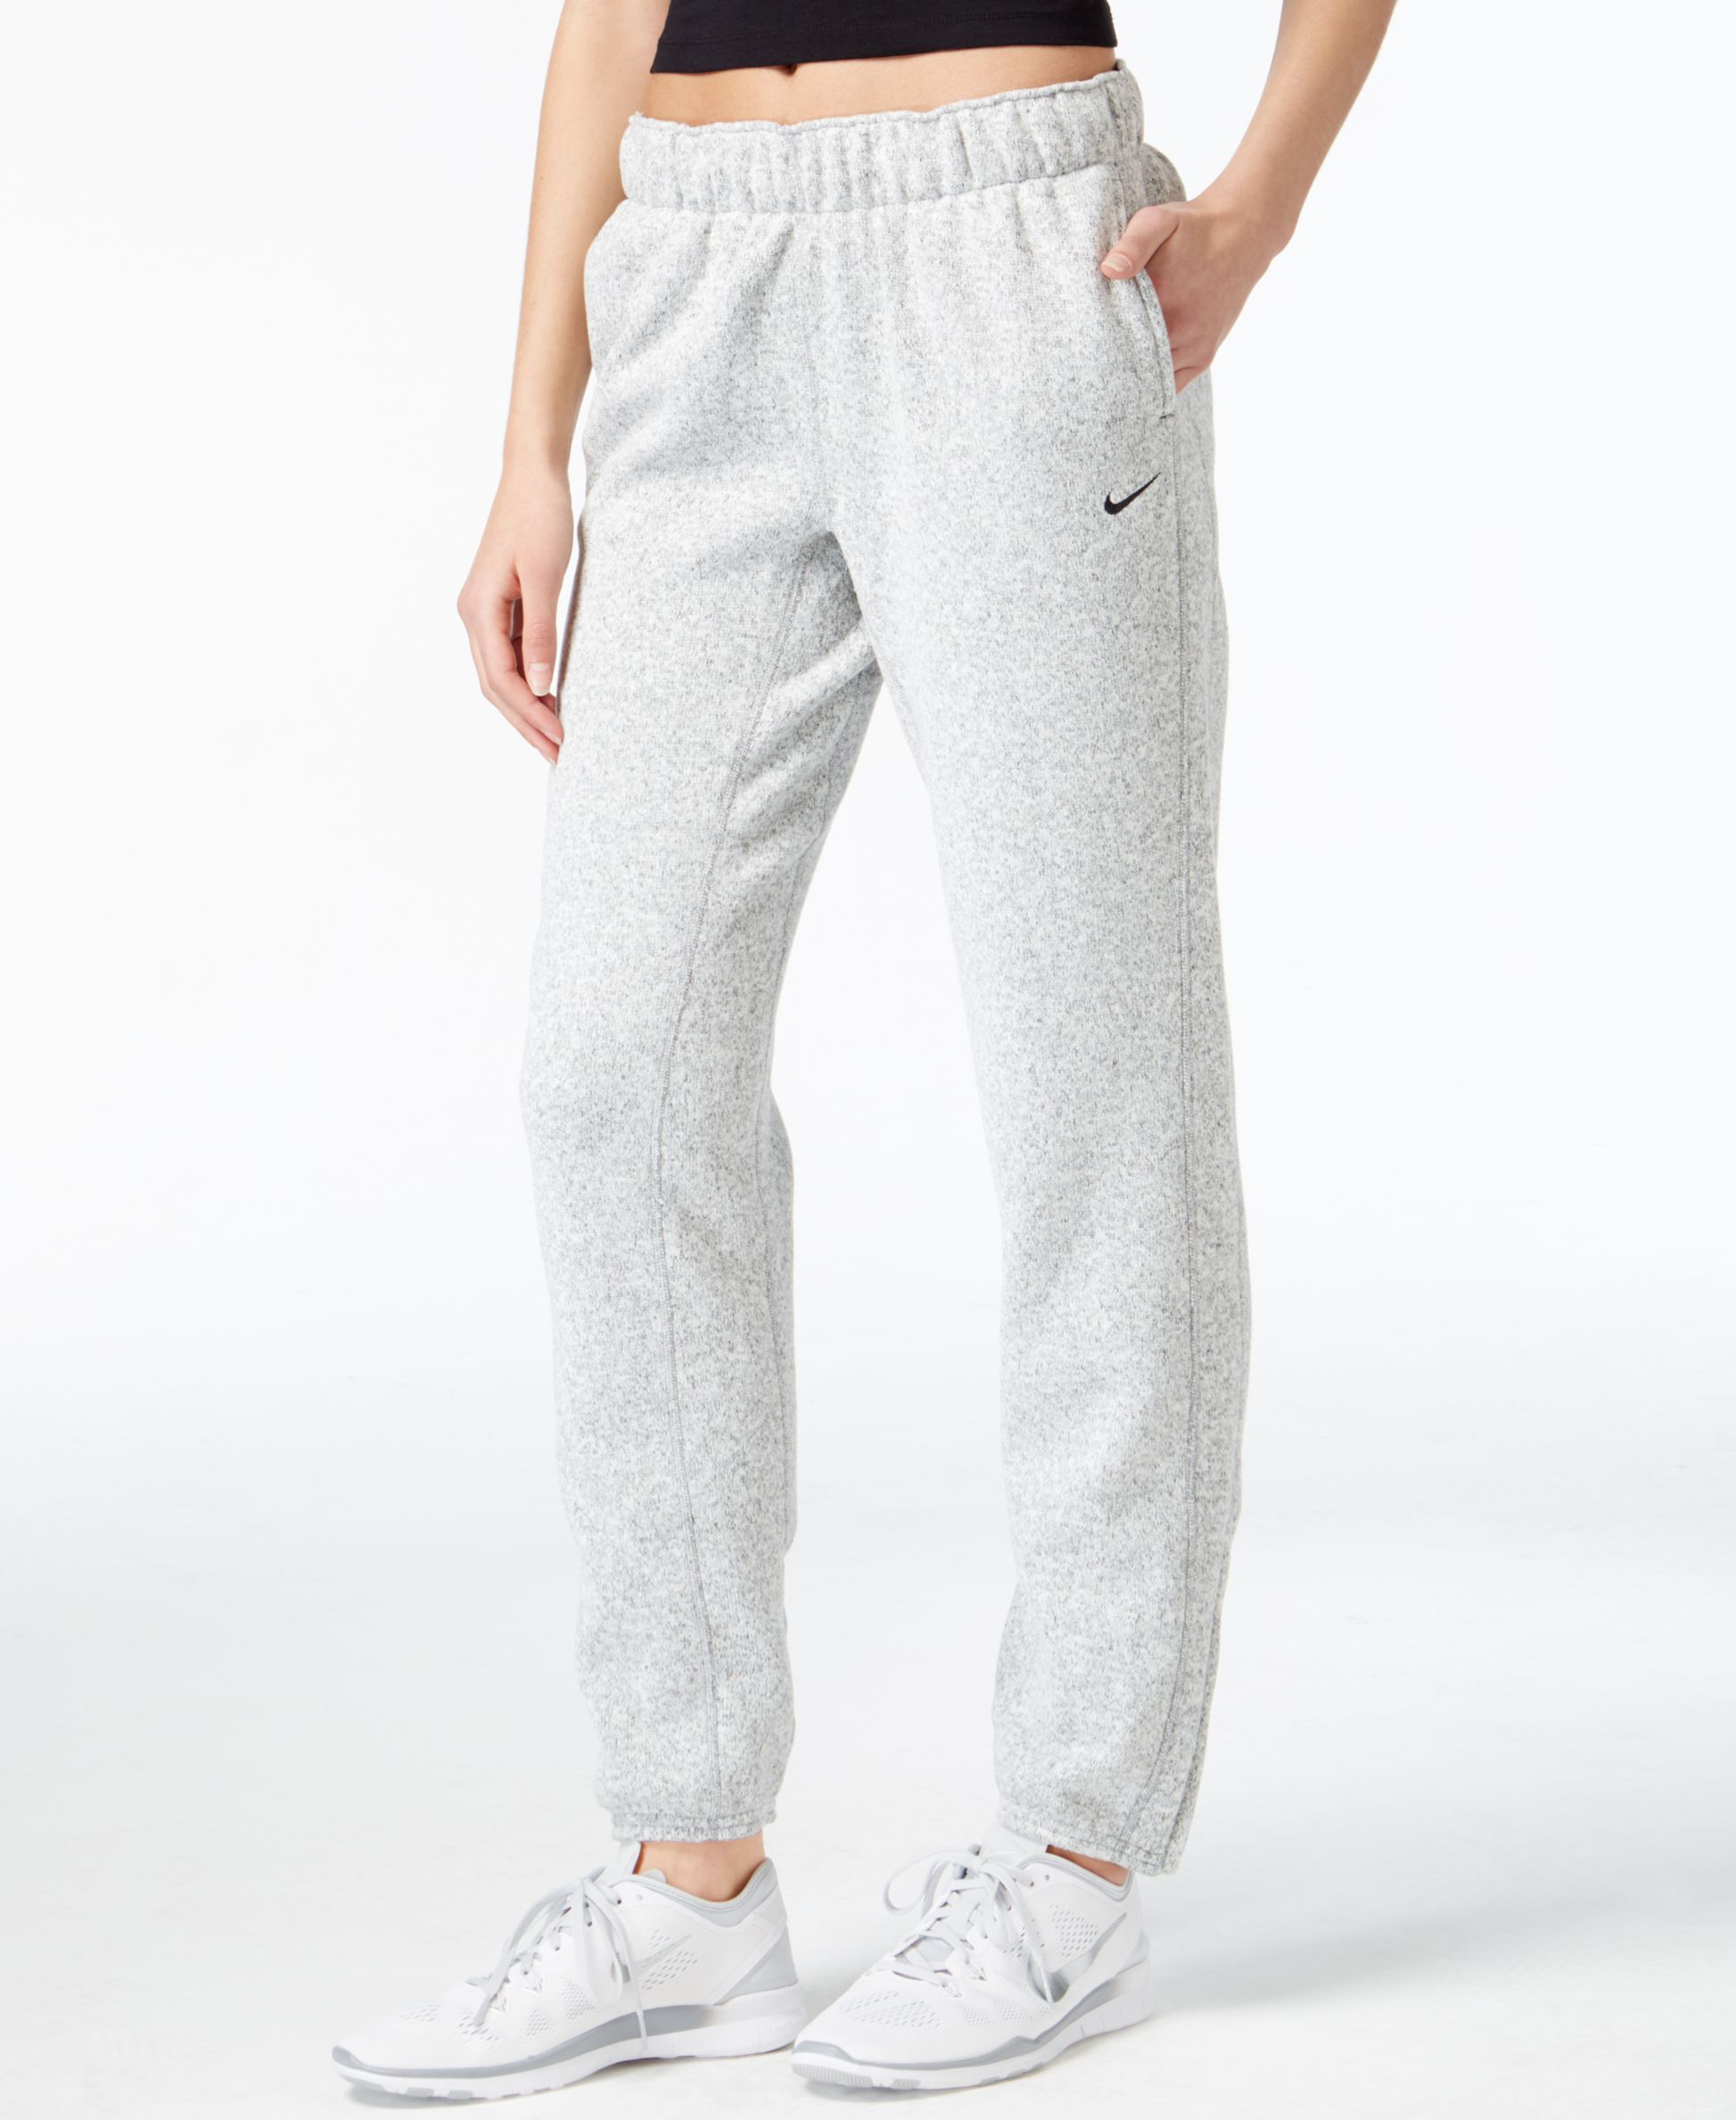 7be242dec1ded6 Nike Therma-fit Sweat Pants